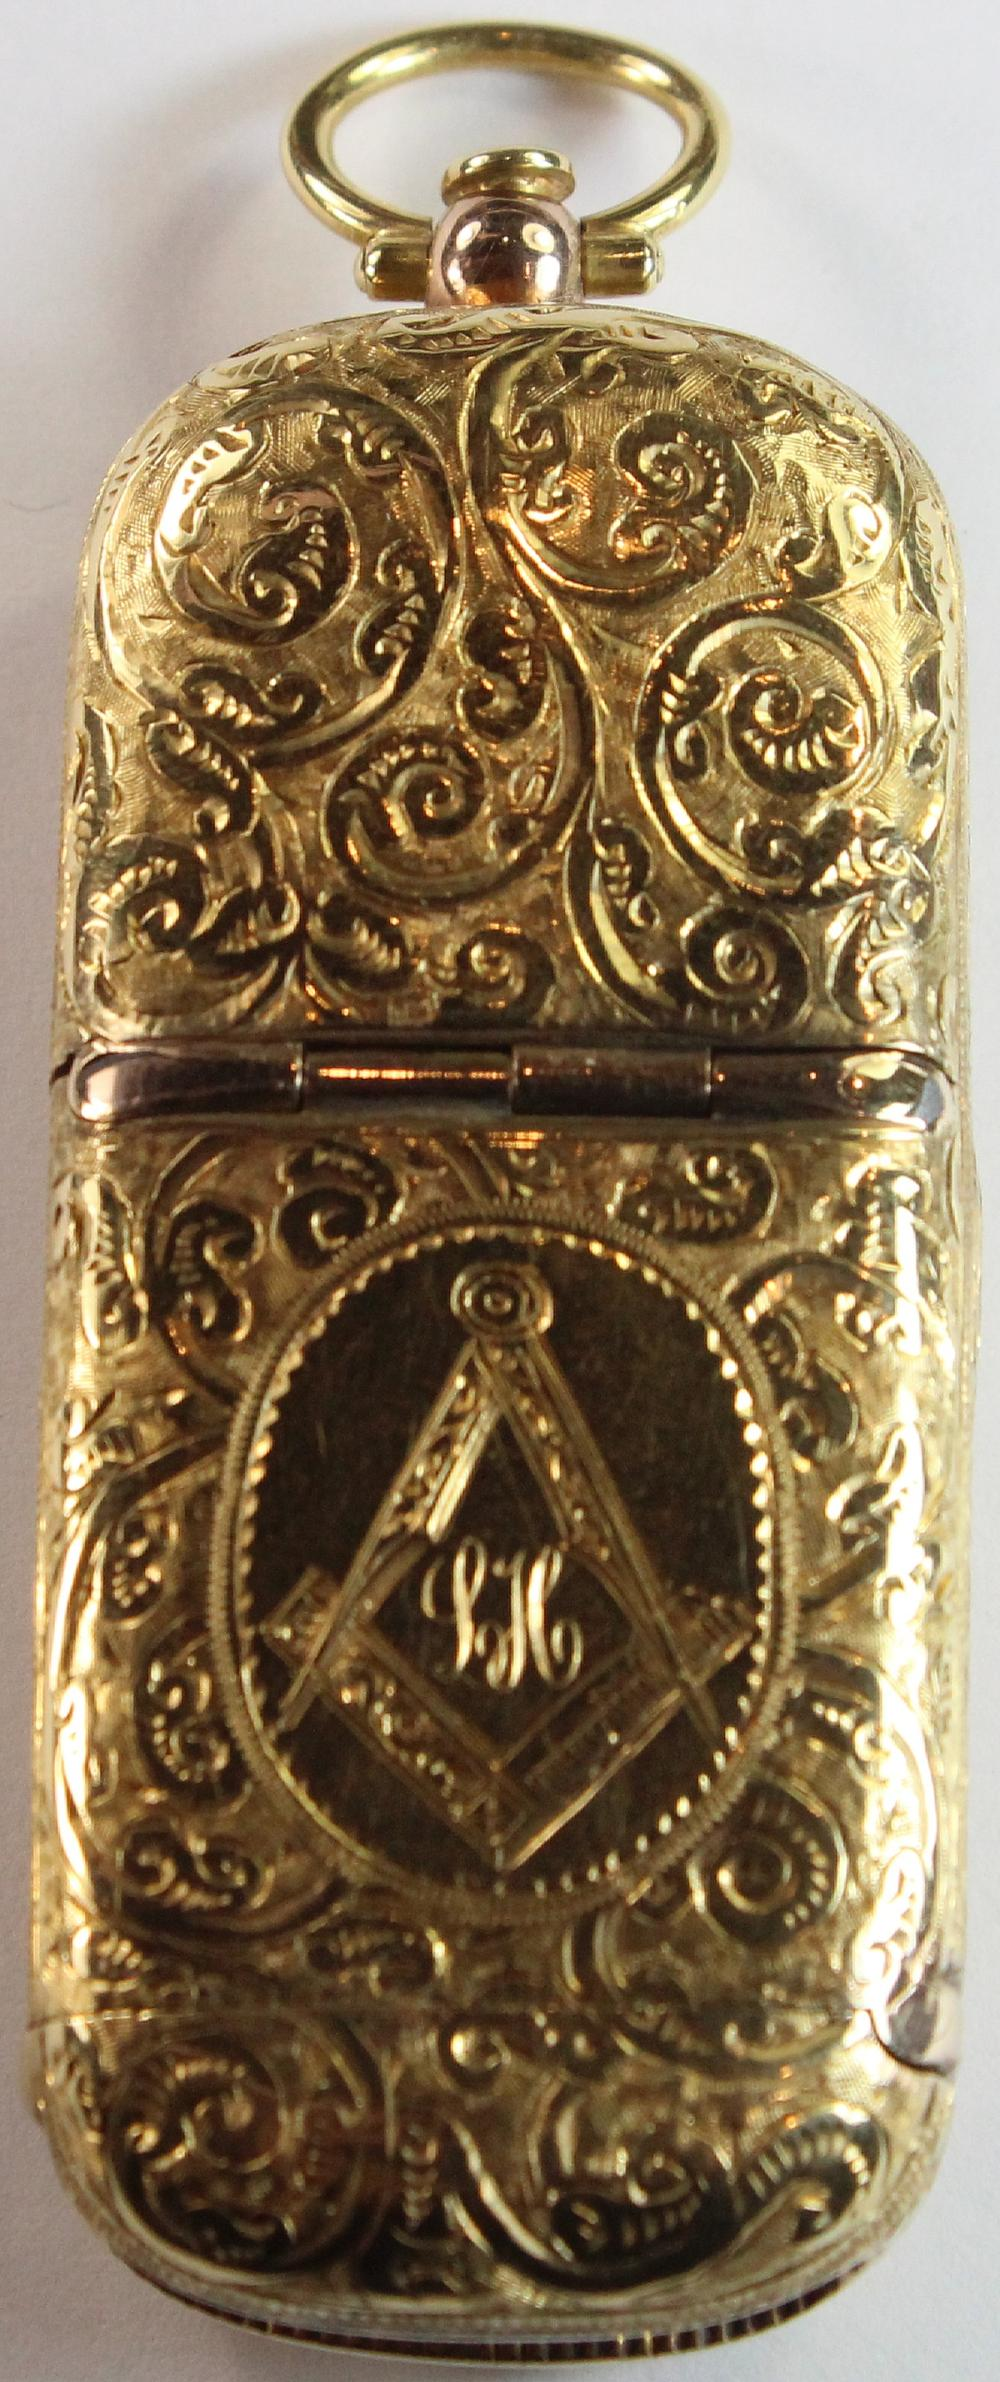 Sovereign & Vesta Case in 18ct Gold by Catananch (Melb) circa 1920s